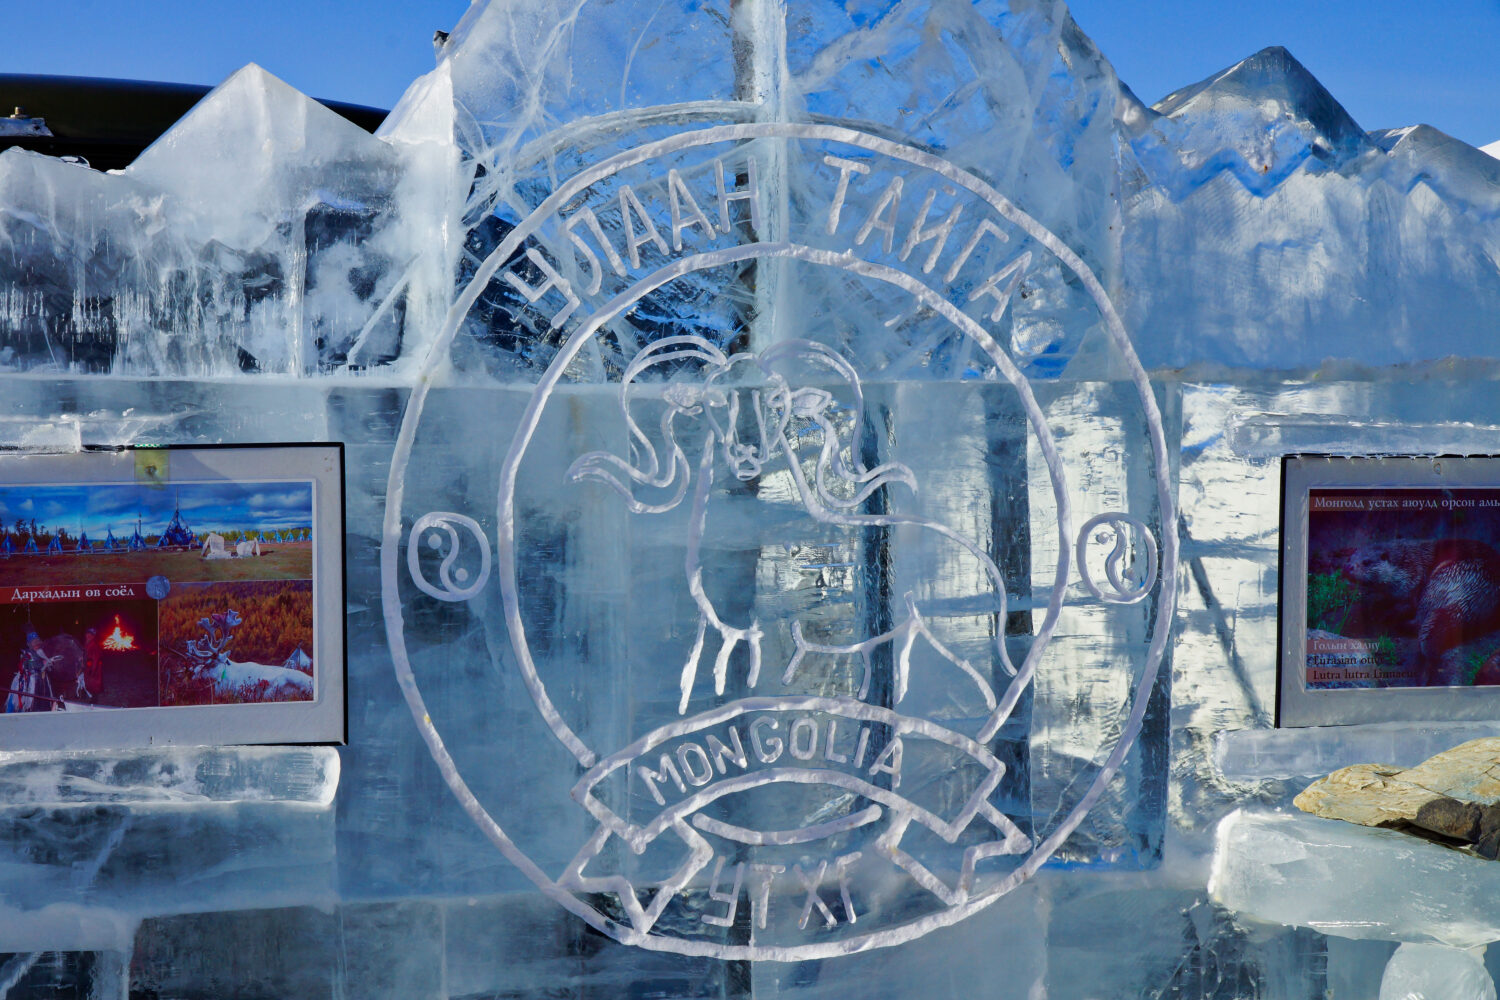 5 reasons to visit the Ice Festival in Mongolia by a resident